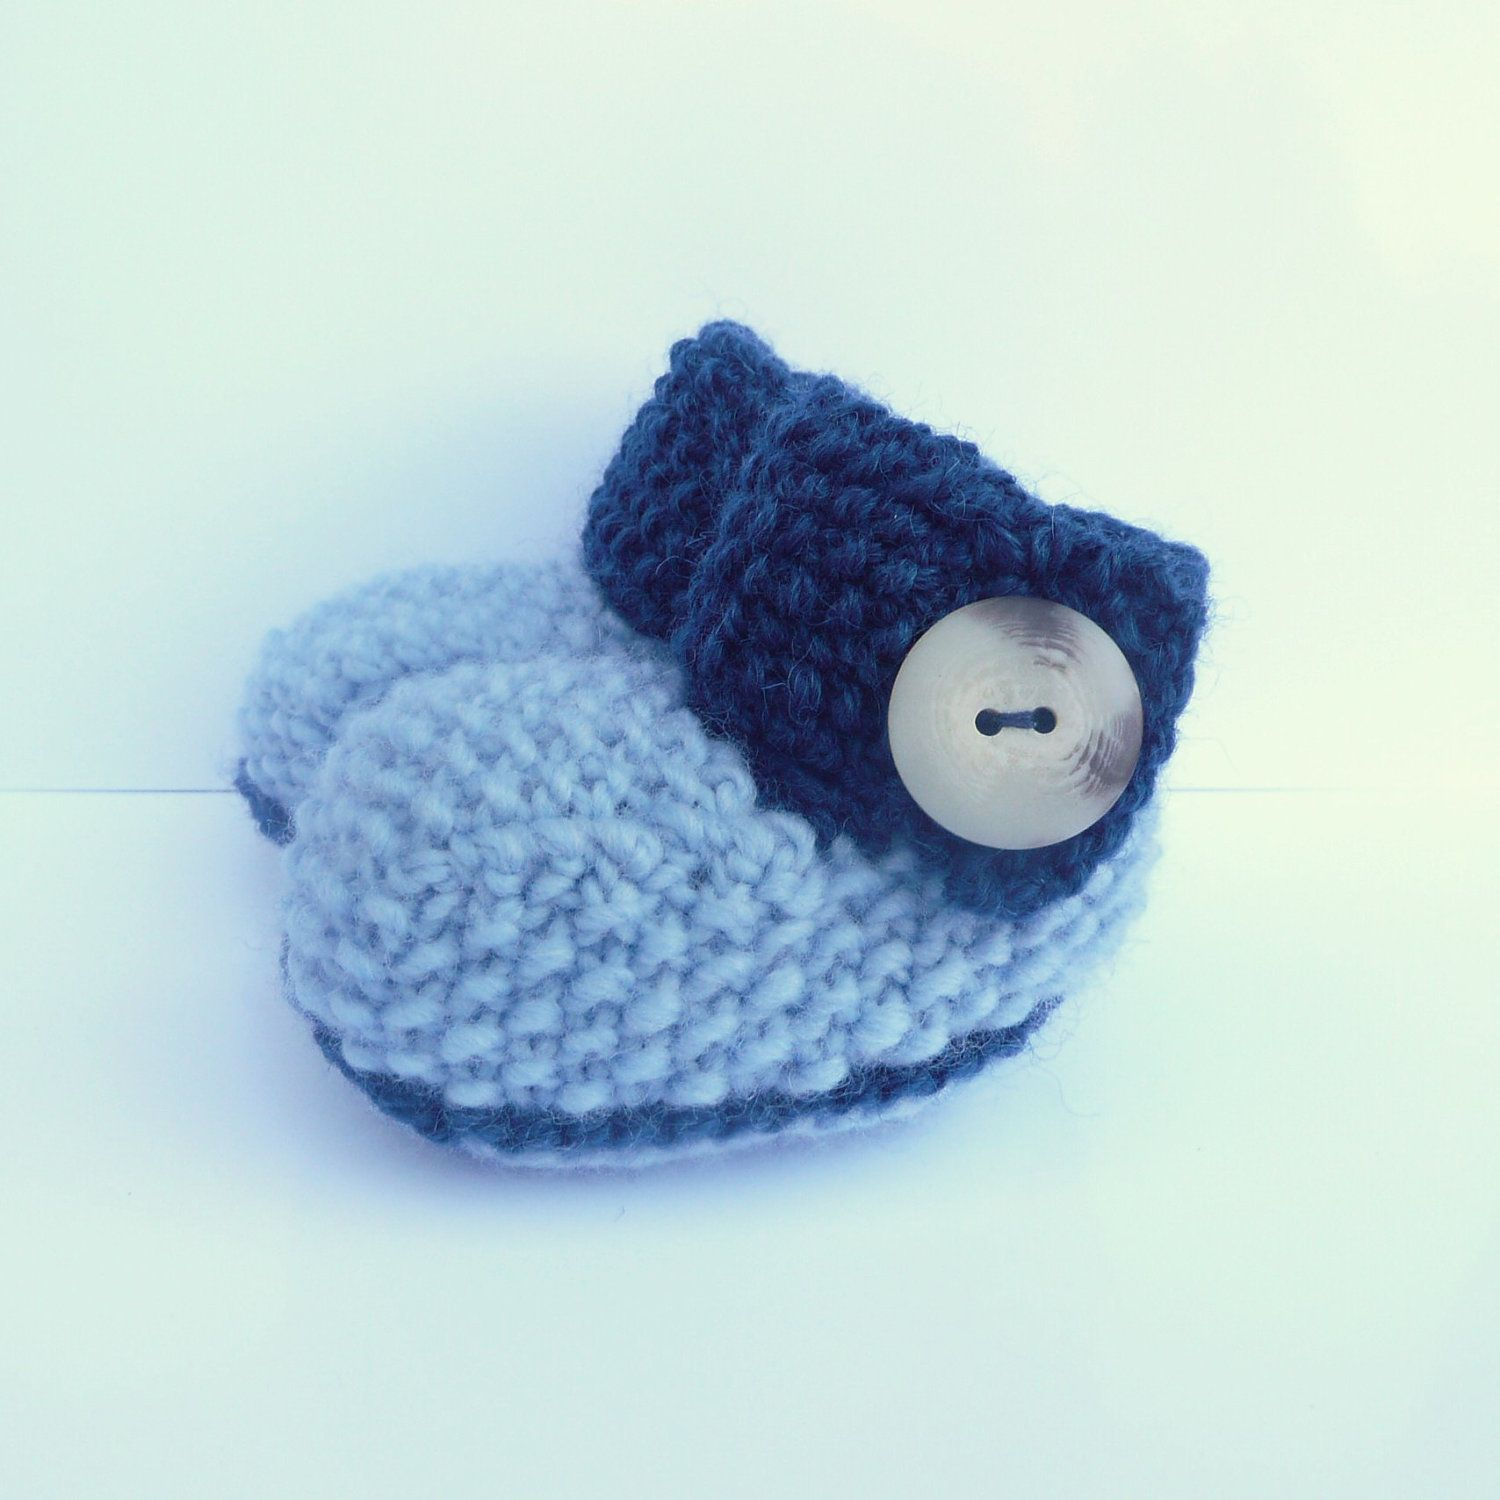 BABY BOOTIES Knitting PATTERN Big Button Baby Boots $4 00 via Etsy